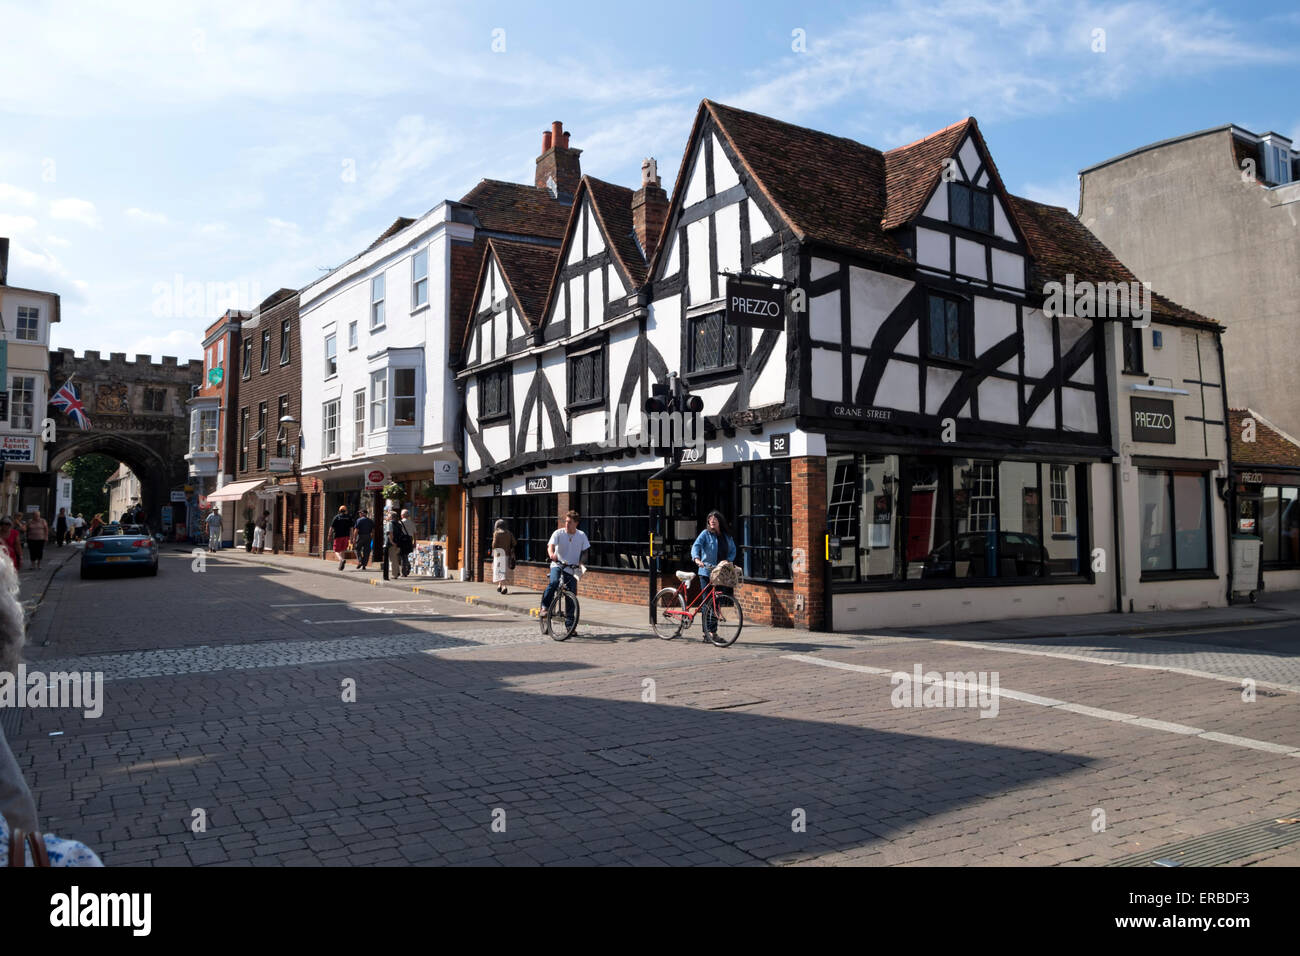 A Tudor building in Salisbury High Street, Wiltshire, United Kingdom. Stock Photo